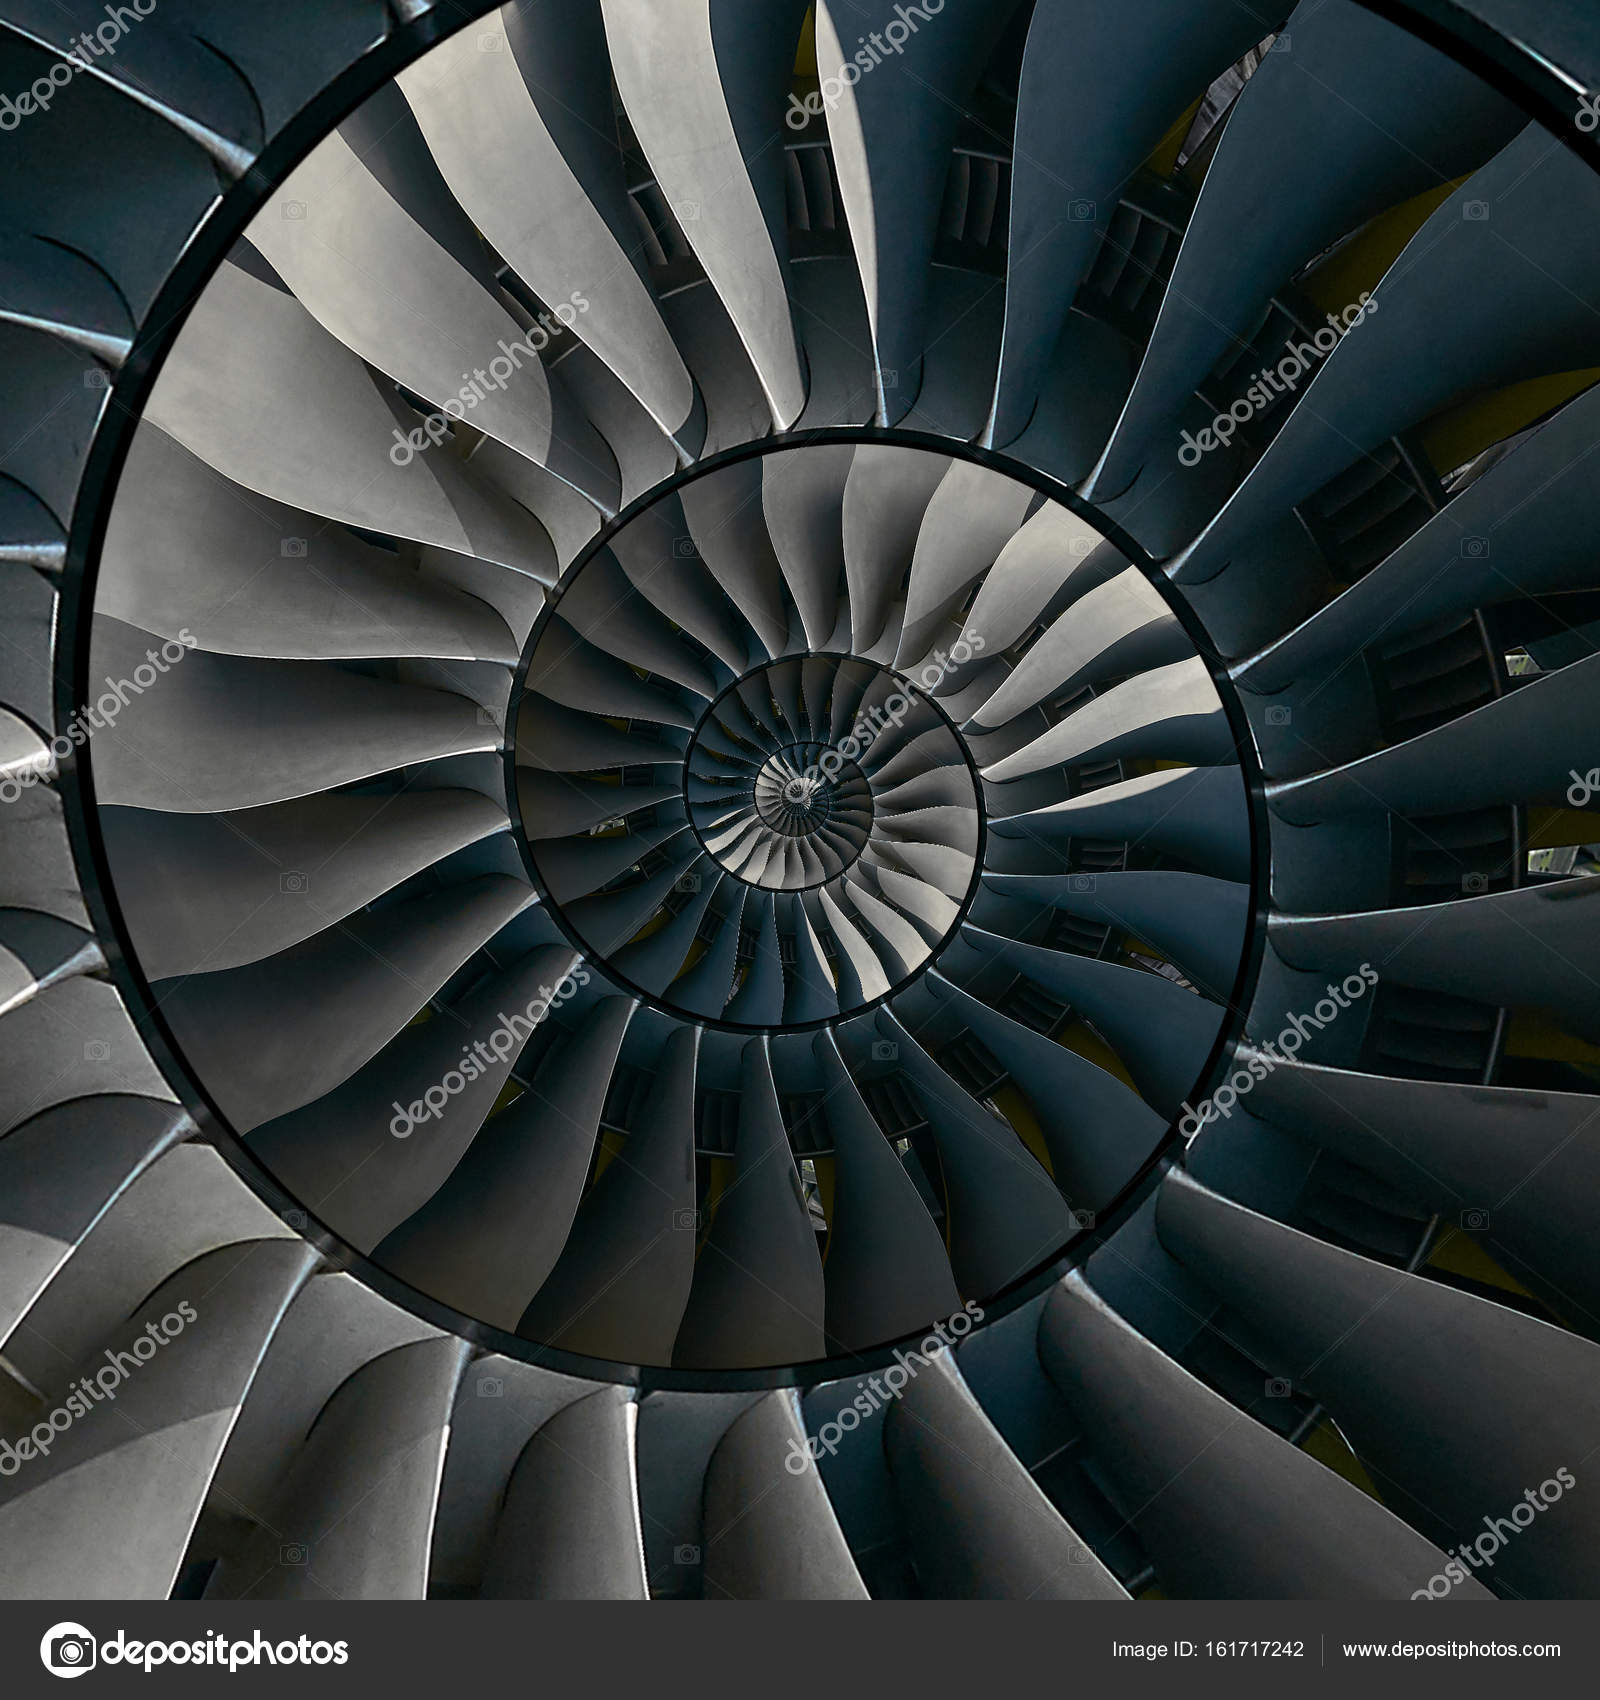 Turbine blades wings spiral effect abstract fractal pattern ...